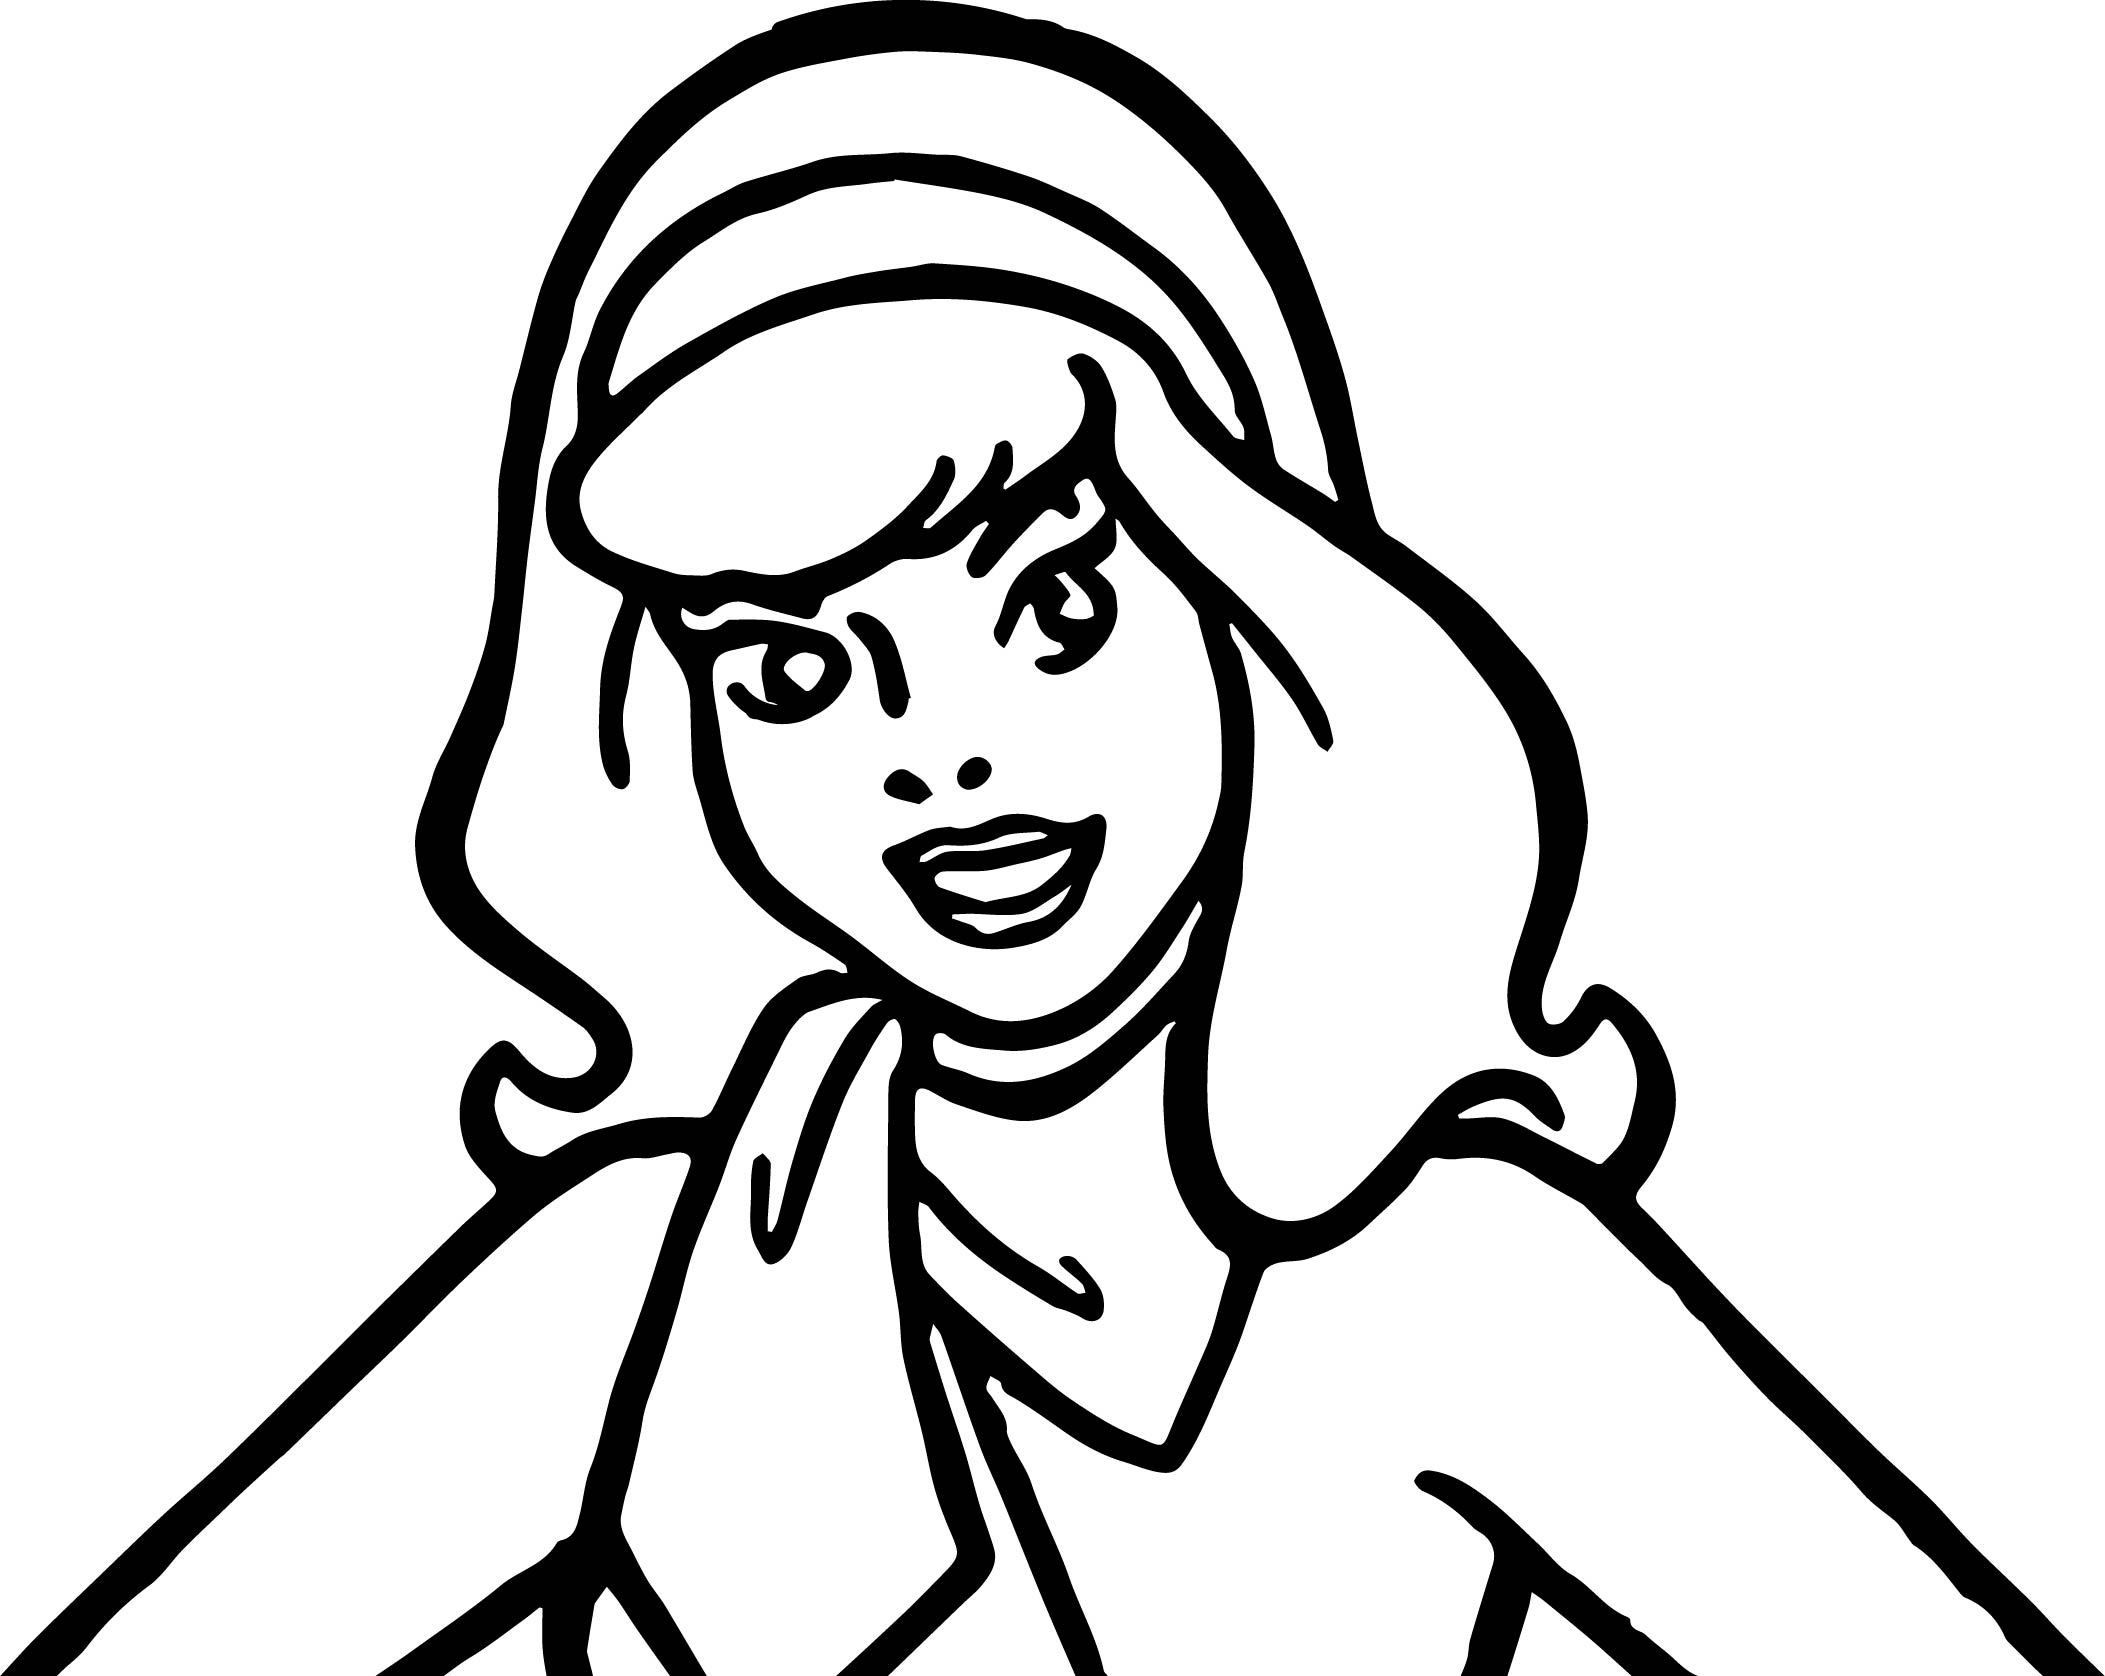 Coloring Pages For Boys Scooby Doo  awesome Daphne Scooby Doo Make Up Coloring Page